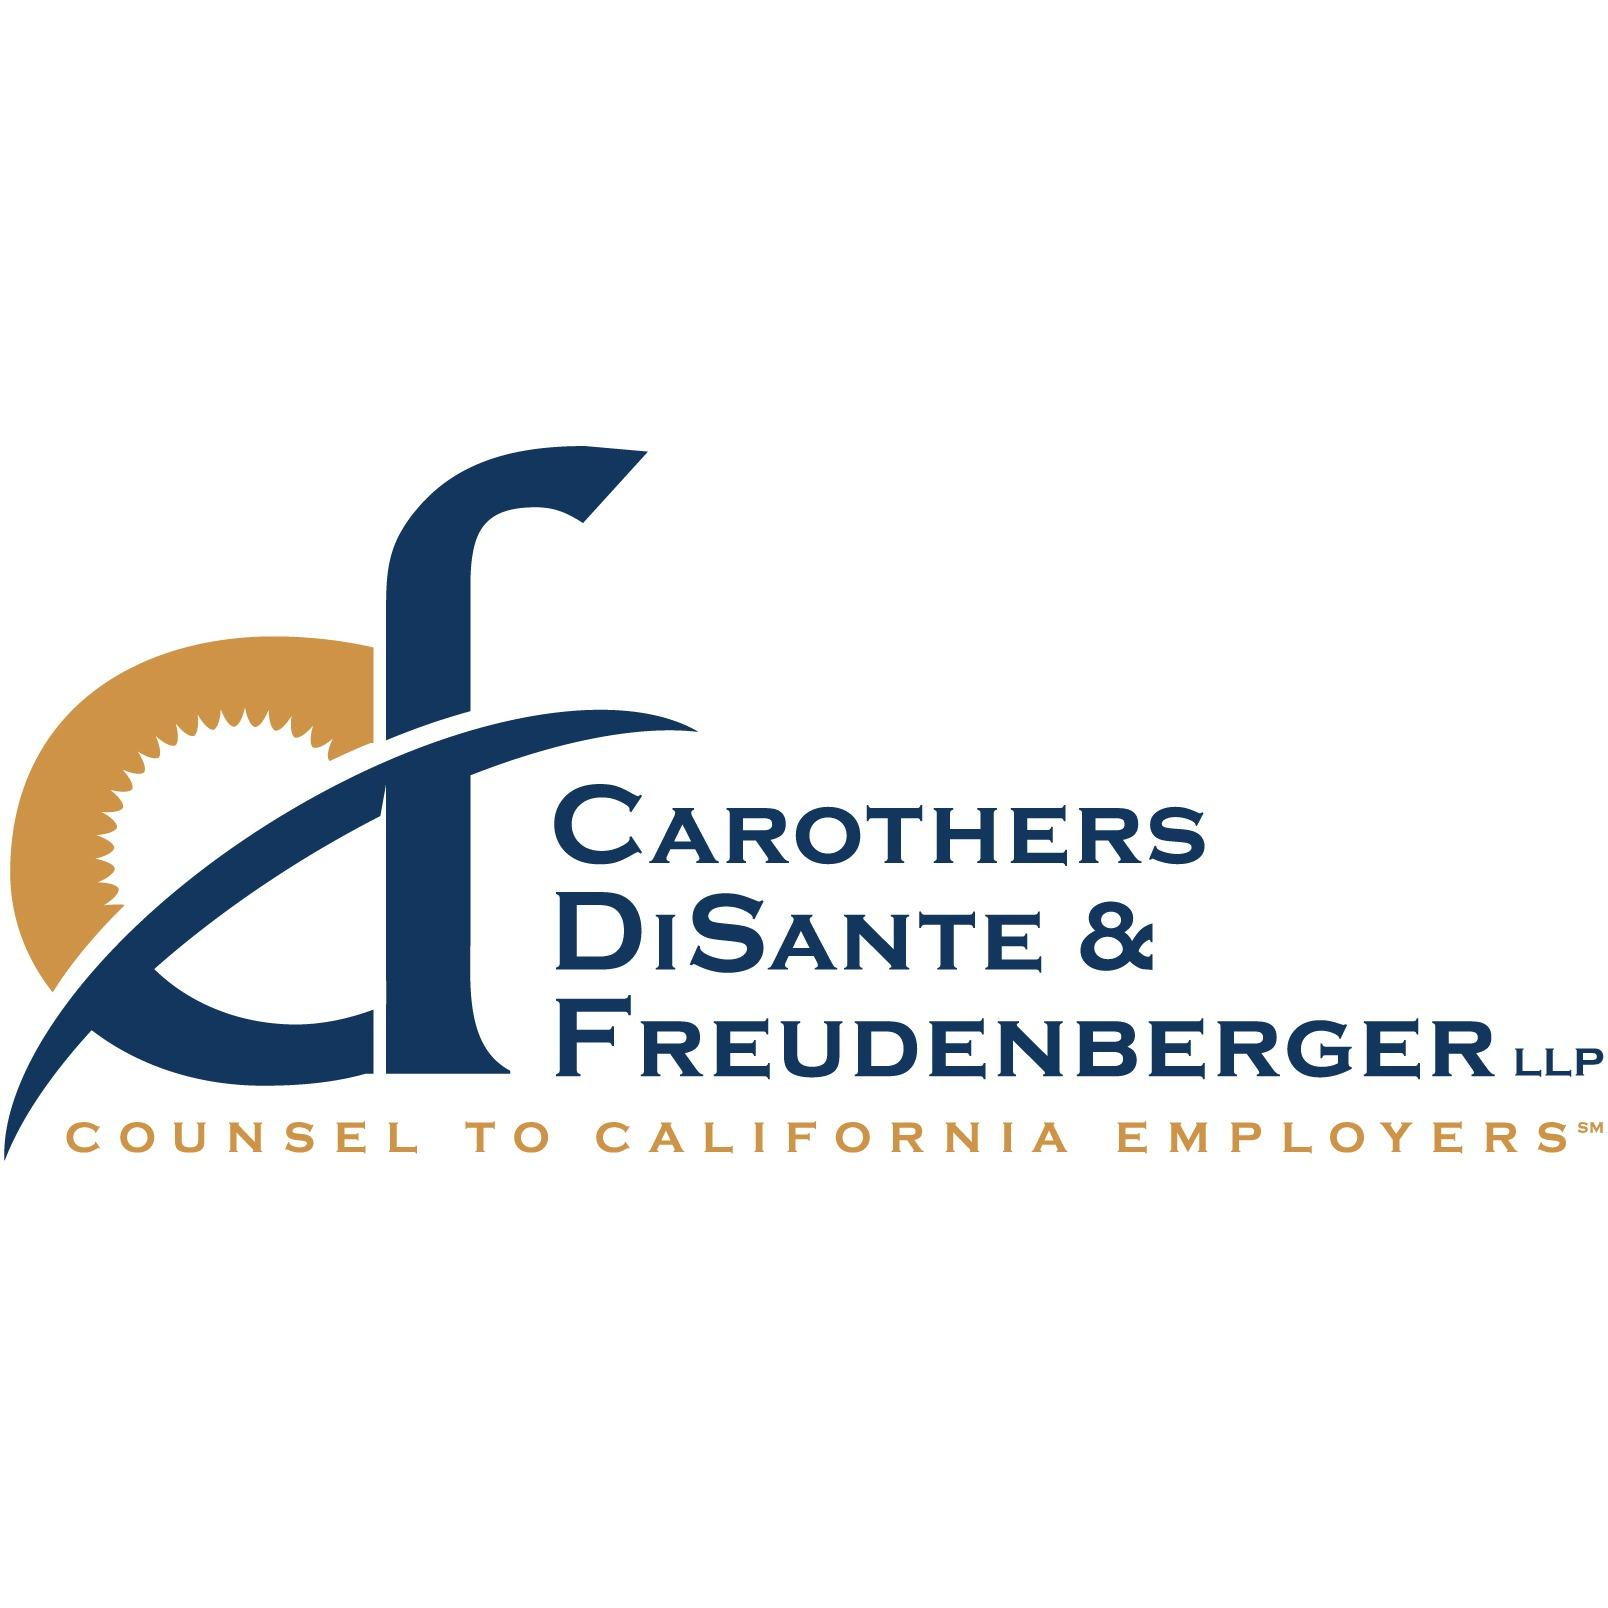 Carothers DiSante & Freudenberger LLP